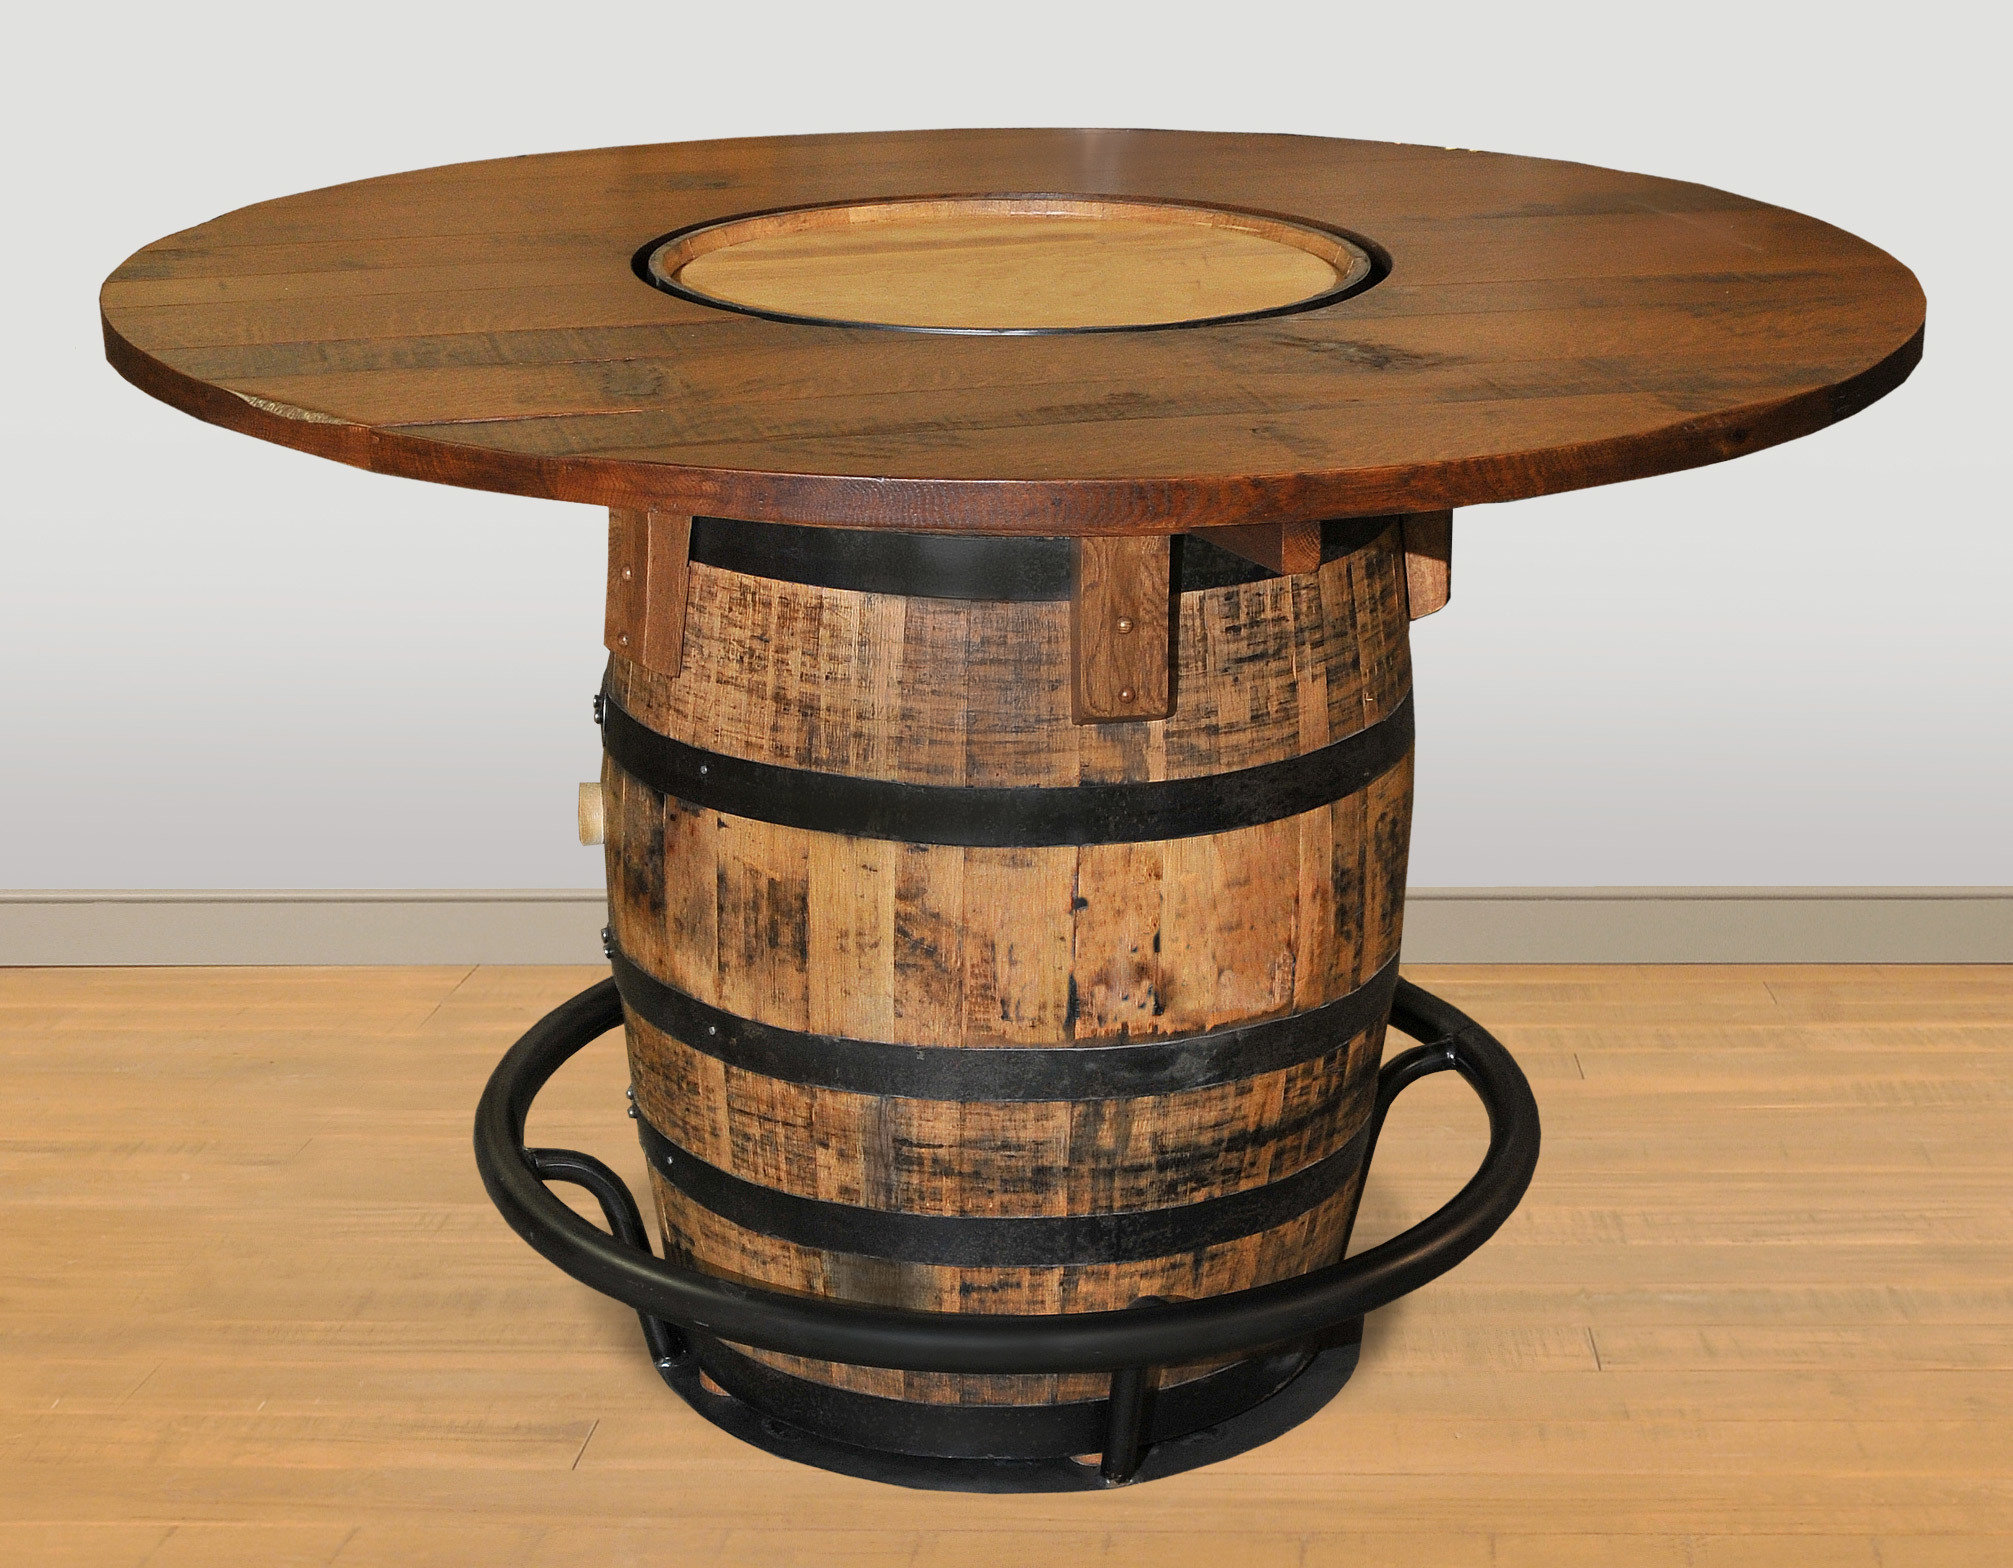 Whiskey Barrel Pub Table by Ruff Sawn jdpt5436